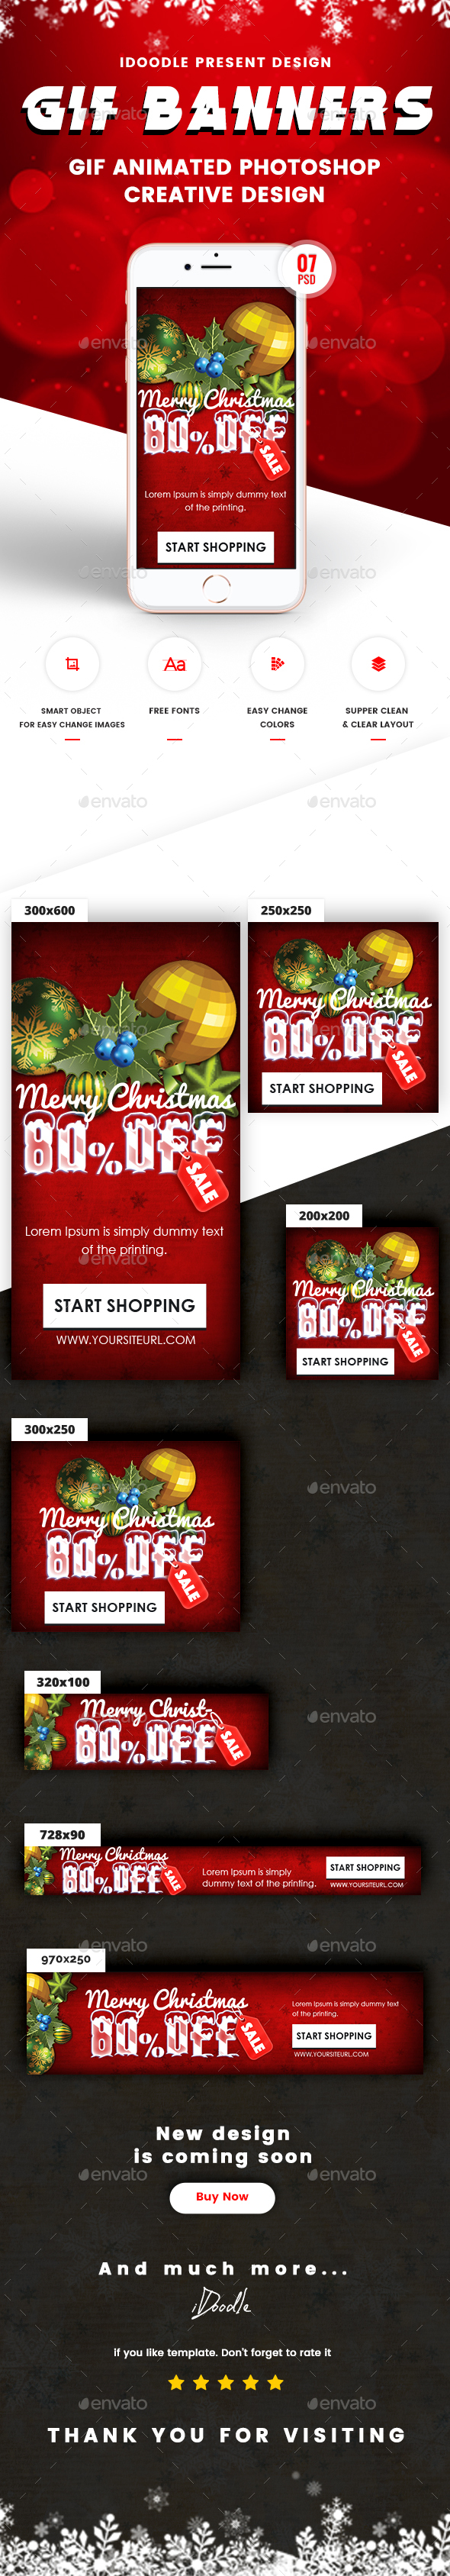 GraphicRiver Animated GIF Christmas Banners Ad 21127247